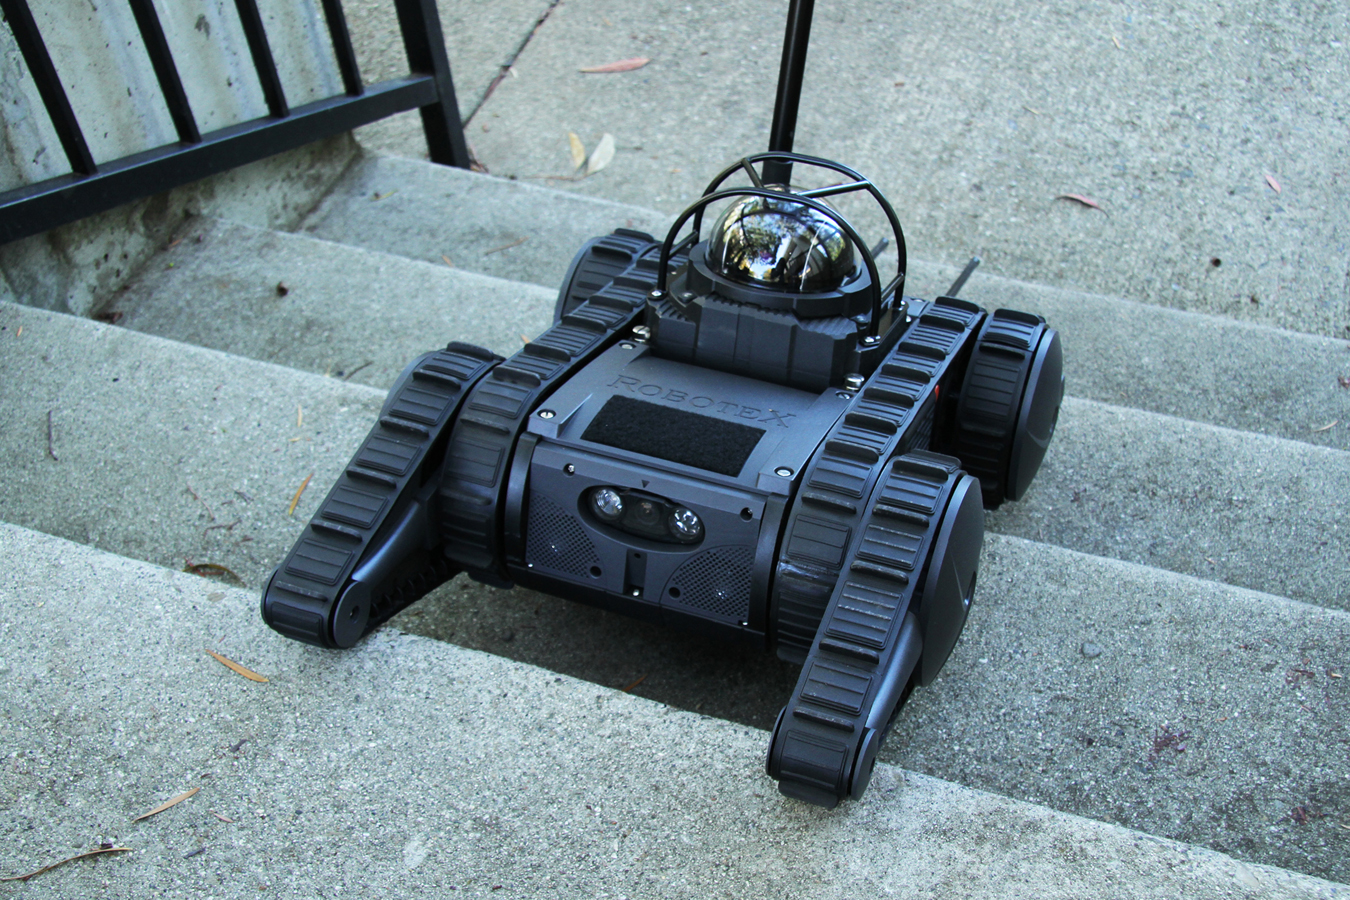 Police Robots Becoming Common Tools For Agencies